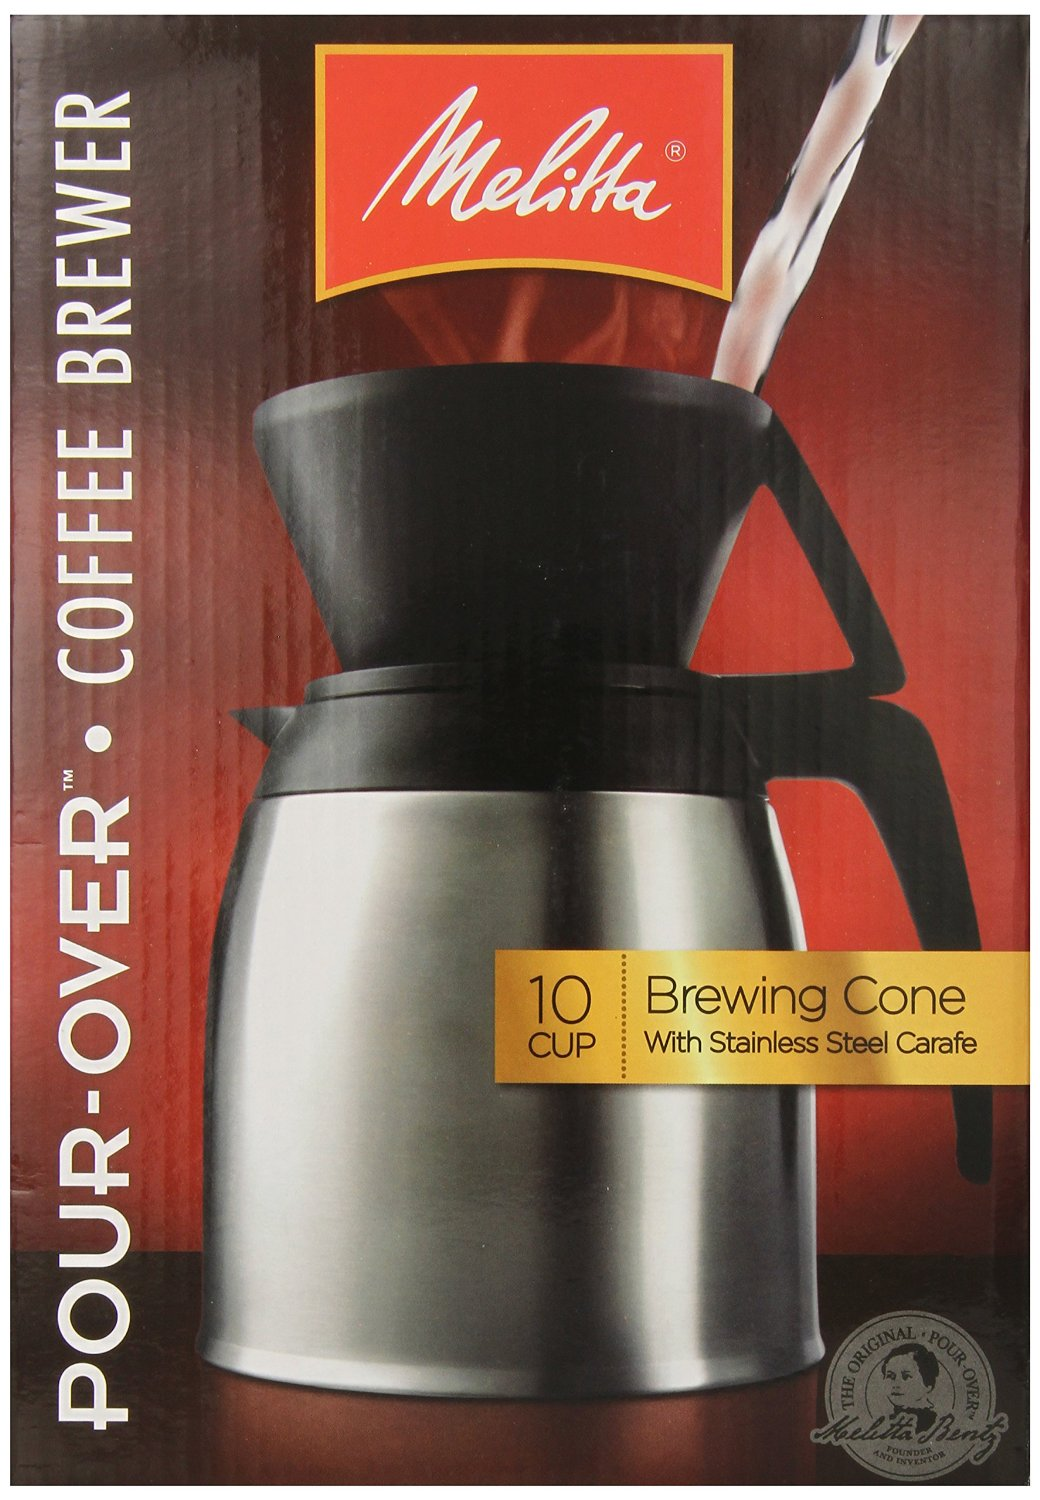 Pour Over Coffee Maker Recommendations : Melitta, Stainless Steel Pour-Over Thermal Carafe, 64104 eBay